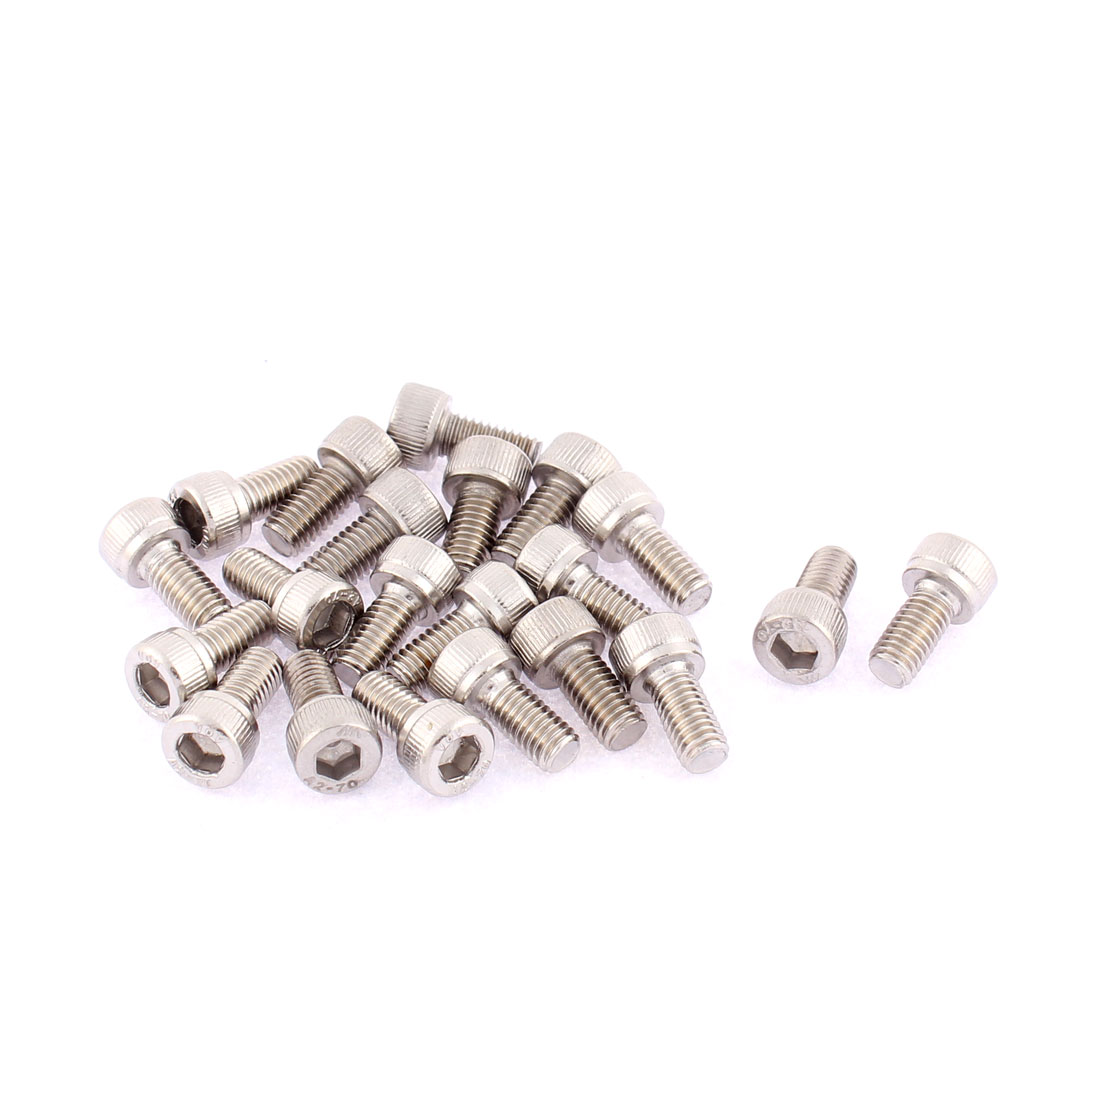 21pcs M5 x 10mm Male Thread 15mm Long Stainless Steel 6-Point Hex Socket Cap Screws Bolts